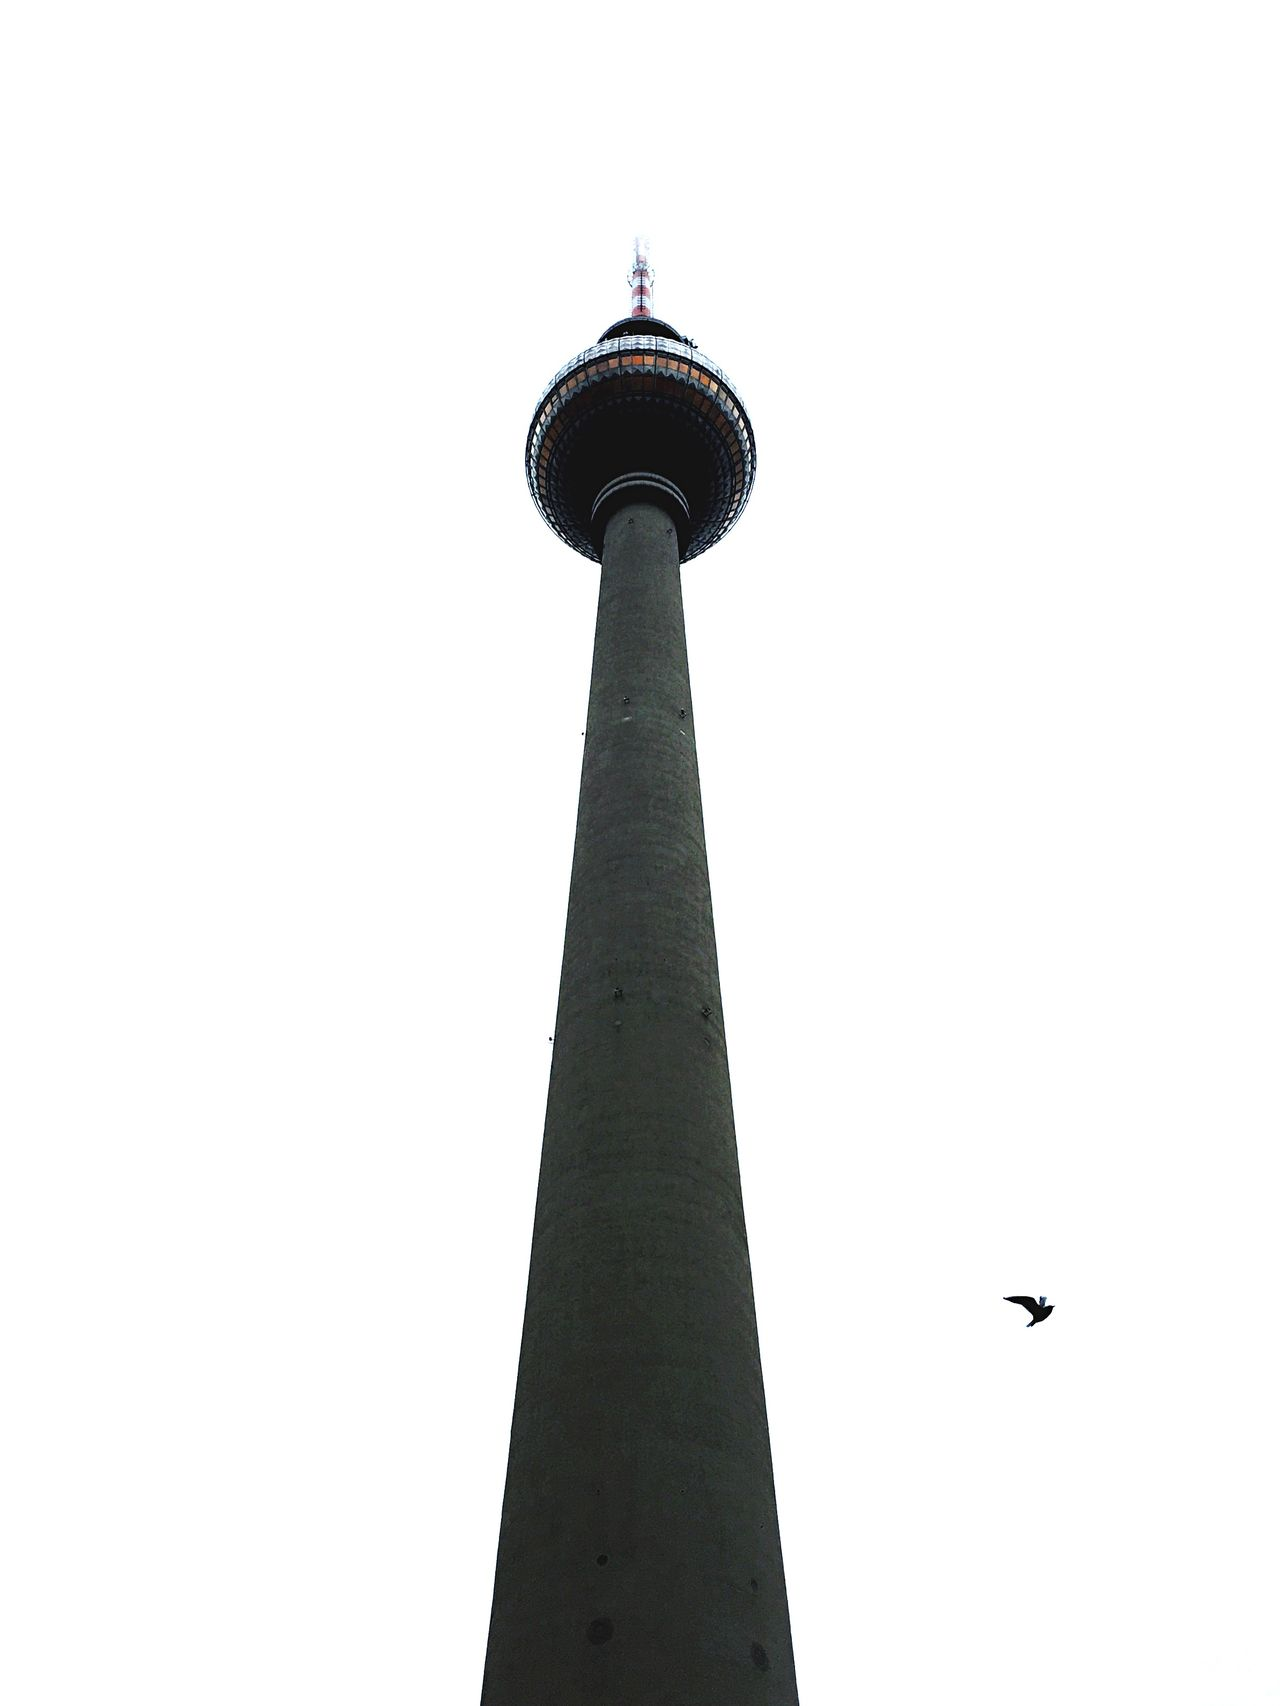 TV Tower Tower Architecture Infinity Berlin Bird Open Edit Smart Simplicity Amazing Architecture The Architect - 2015 EyeEm Awards Battle Of The Cities TakeoverContrast Welcome To Black